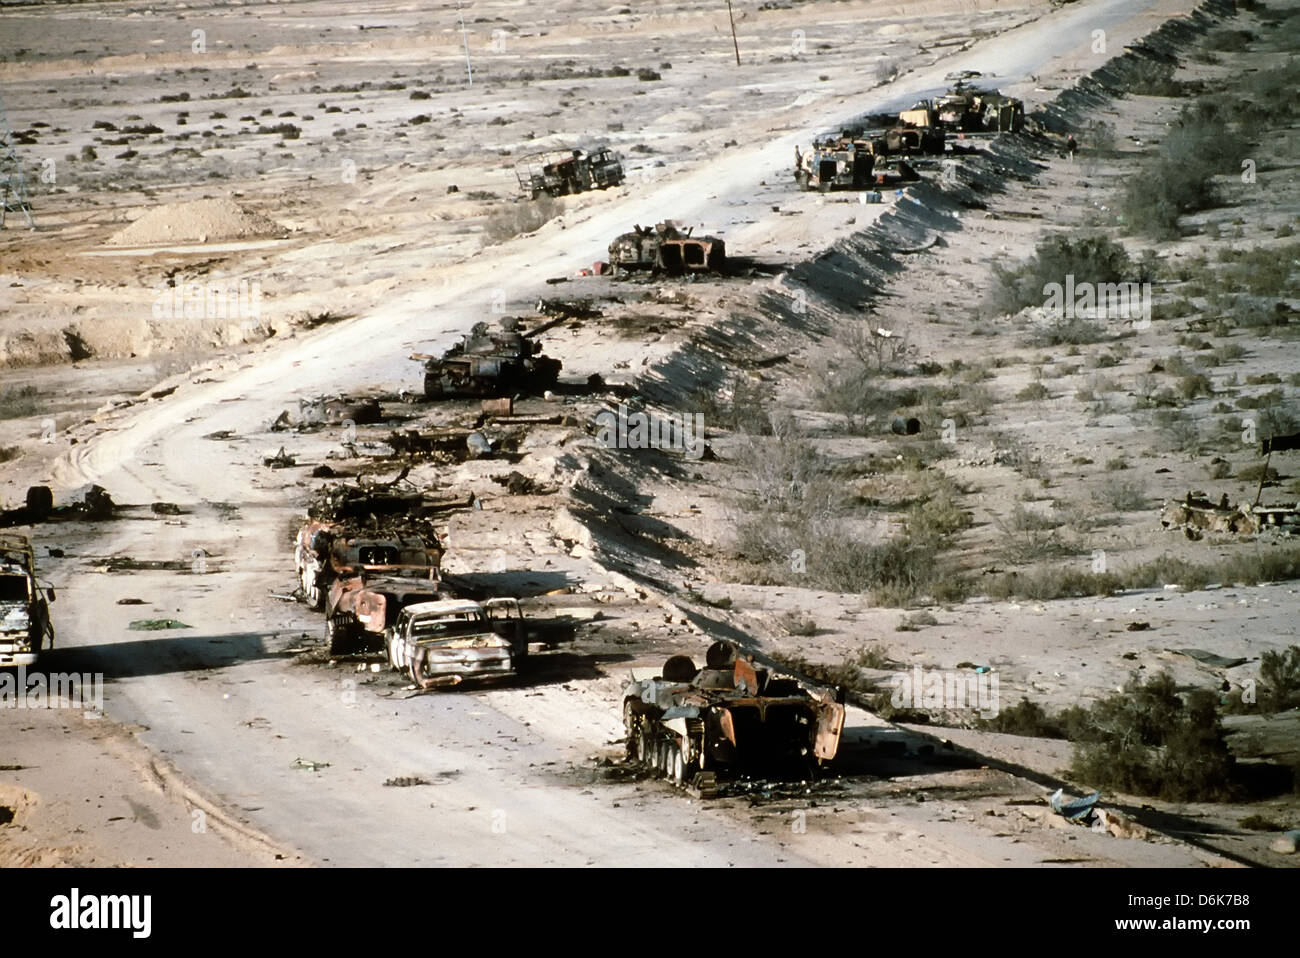 Iraqi Army armored vehicles destroyed while retreating line Highway 8 during the Gulf War April 8, 1991 in Mutla - Stock Image